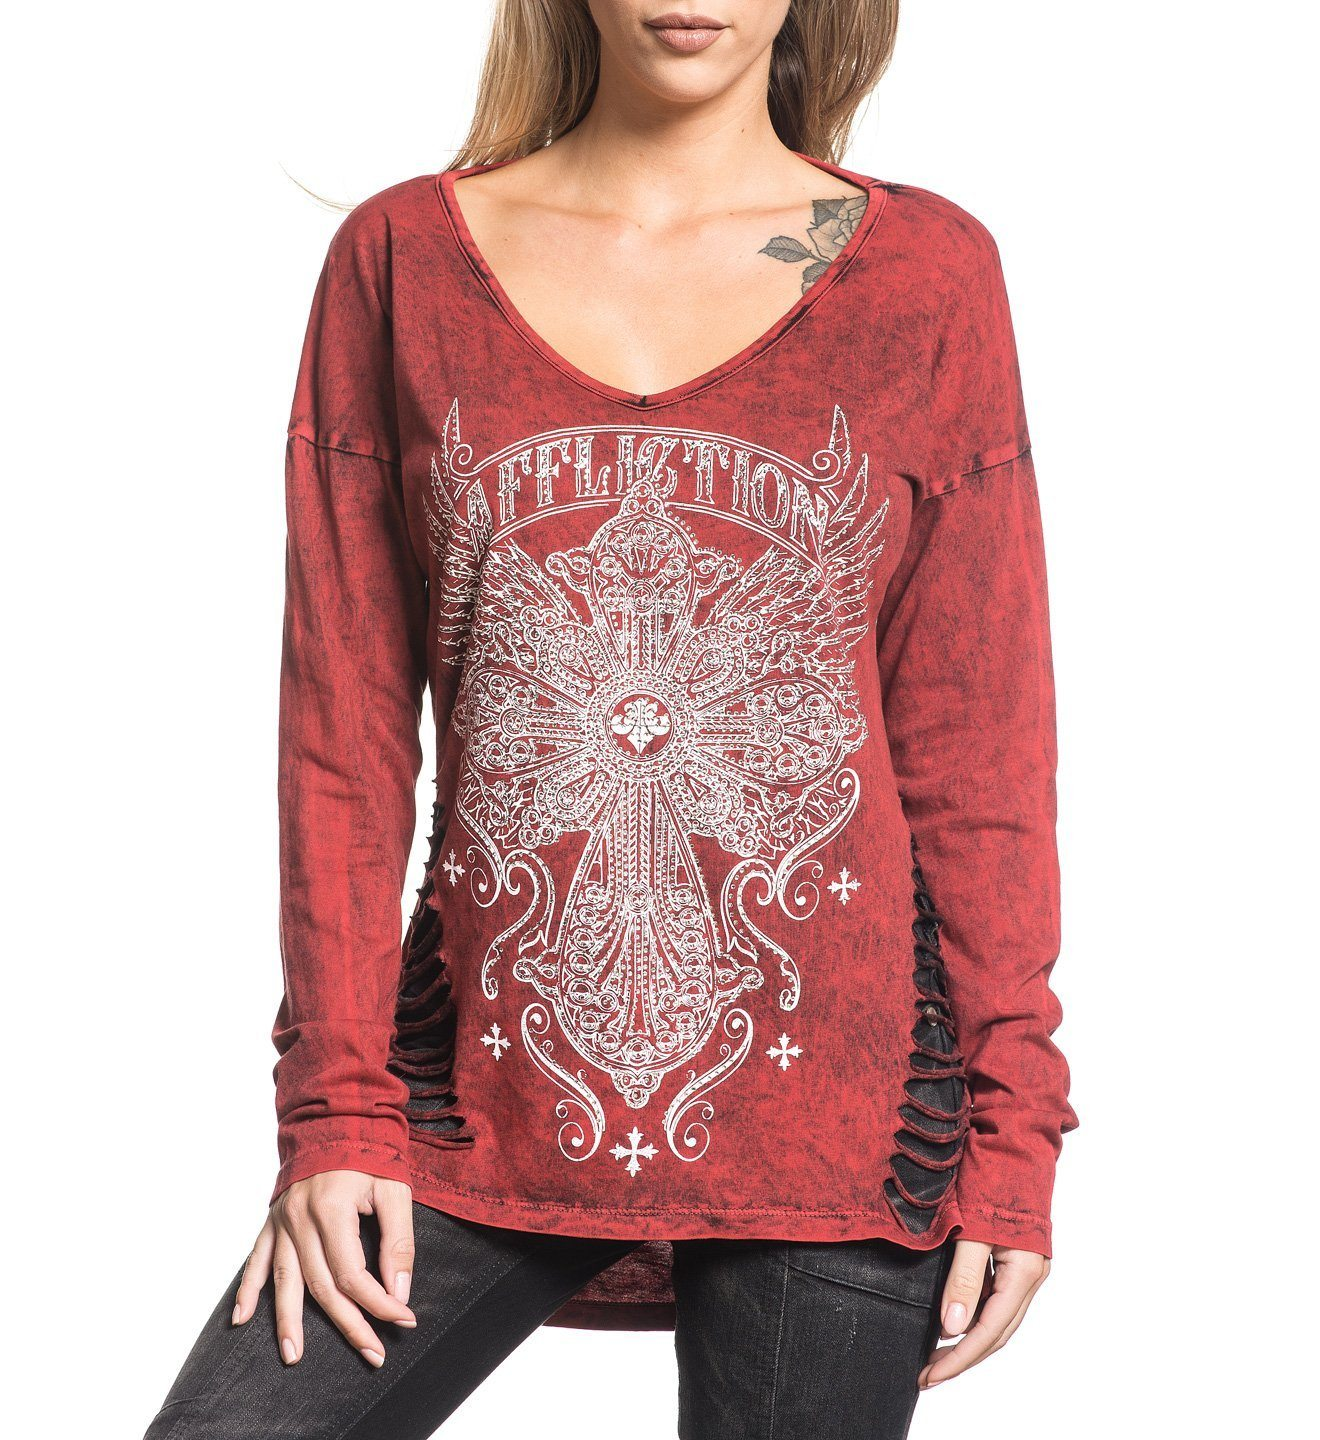 Westchester - Womens Long Sleeve Tees - Affliction Clothing